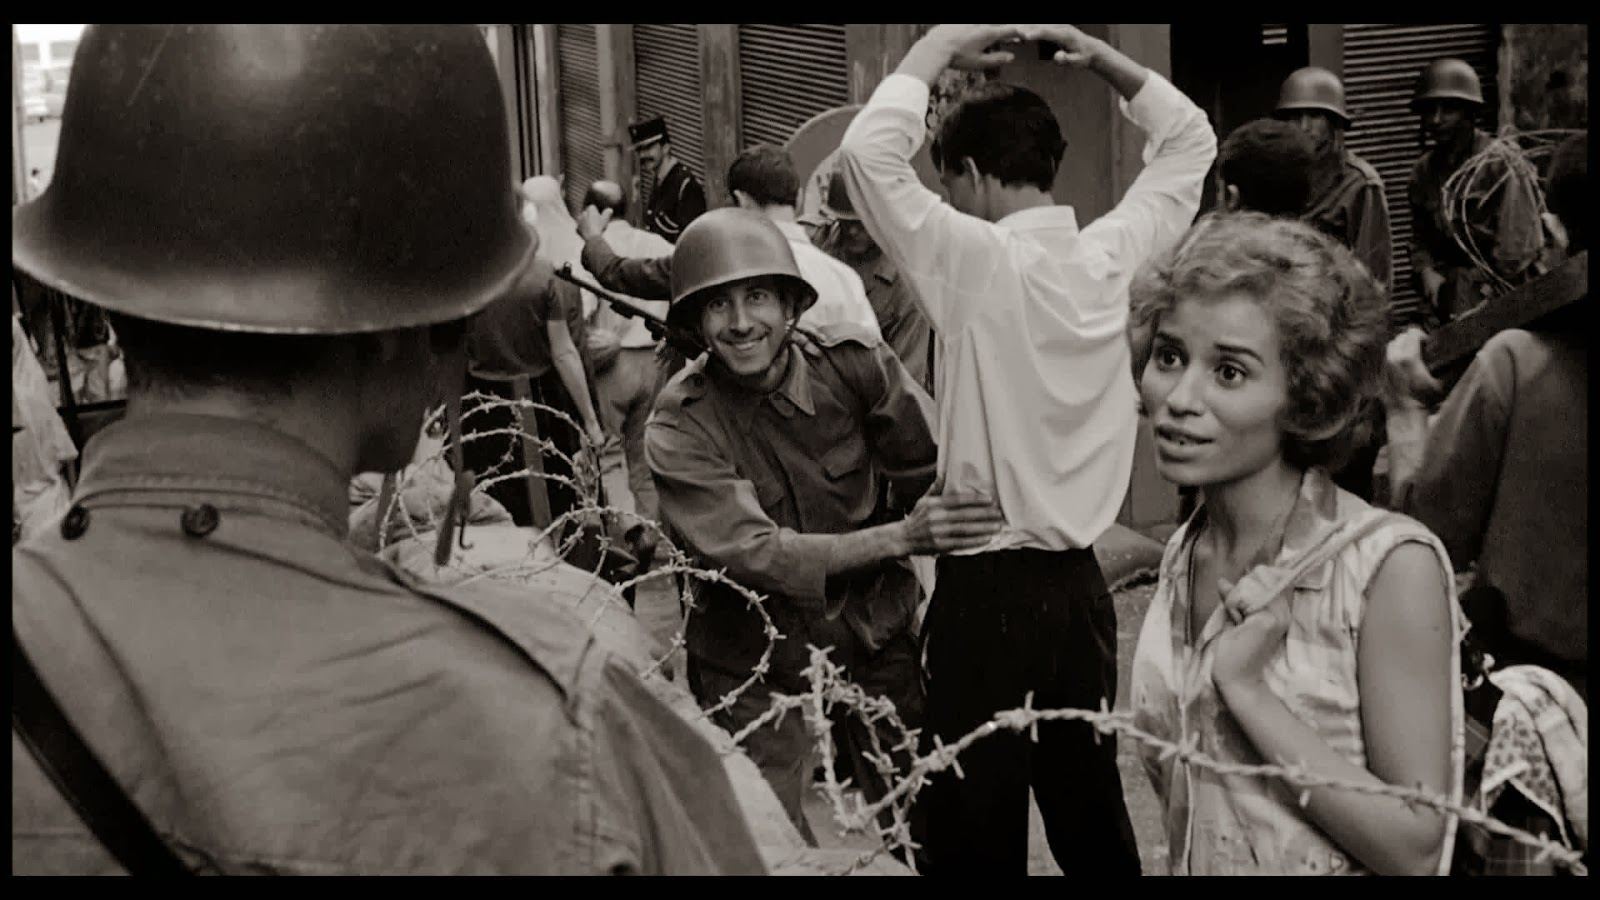 battle of algiers movie essay Order description prompt 3: battle of algiers and return to algiers your assignment is to respond to four of the questions below this is not an essay assignment.